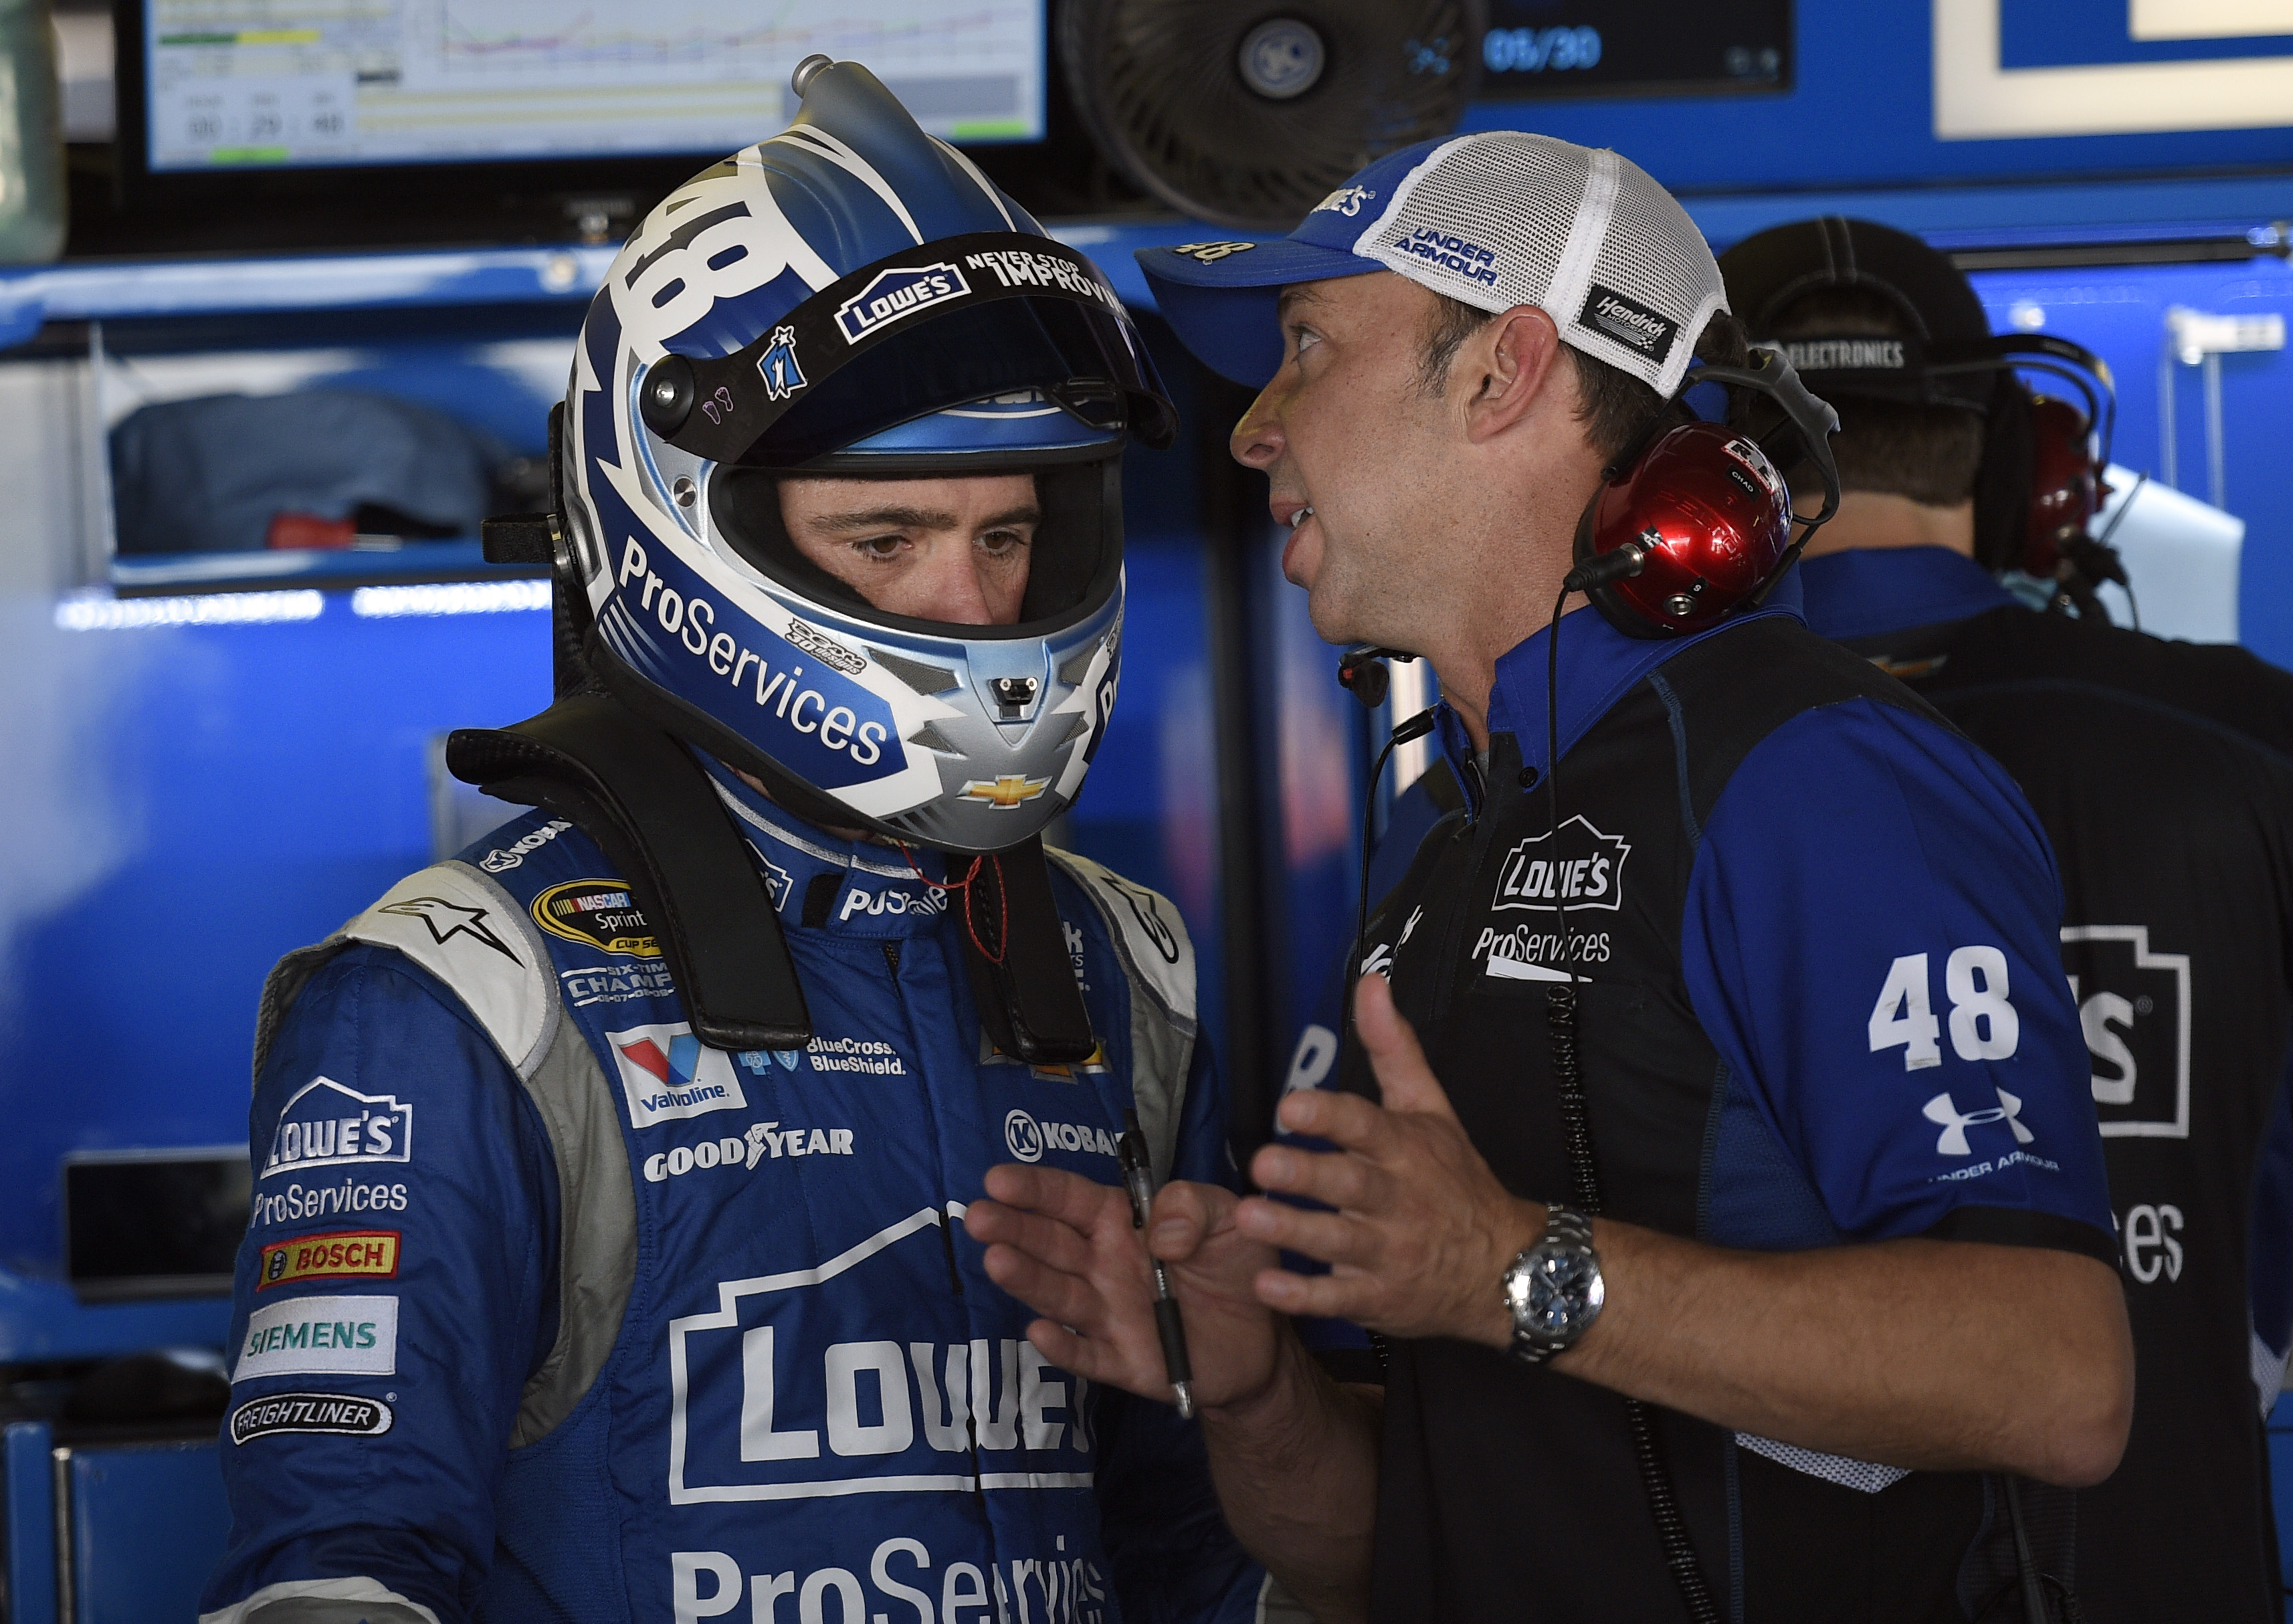 Jimmie Johnson, left, listens to his crew chief Chad Knaus, right, during practice for Sunday's NASCAR Sprint Cup series auto race, Saturday, May 30, 2015, at Dover International Speedway in Dover, Del. (AP Photo/Nick Wass)